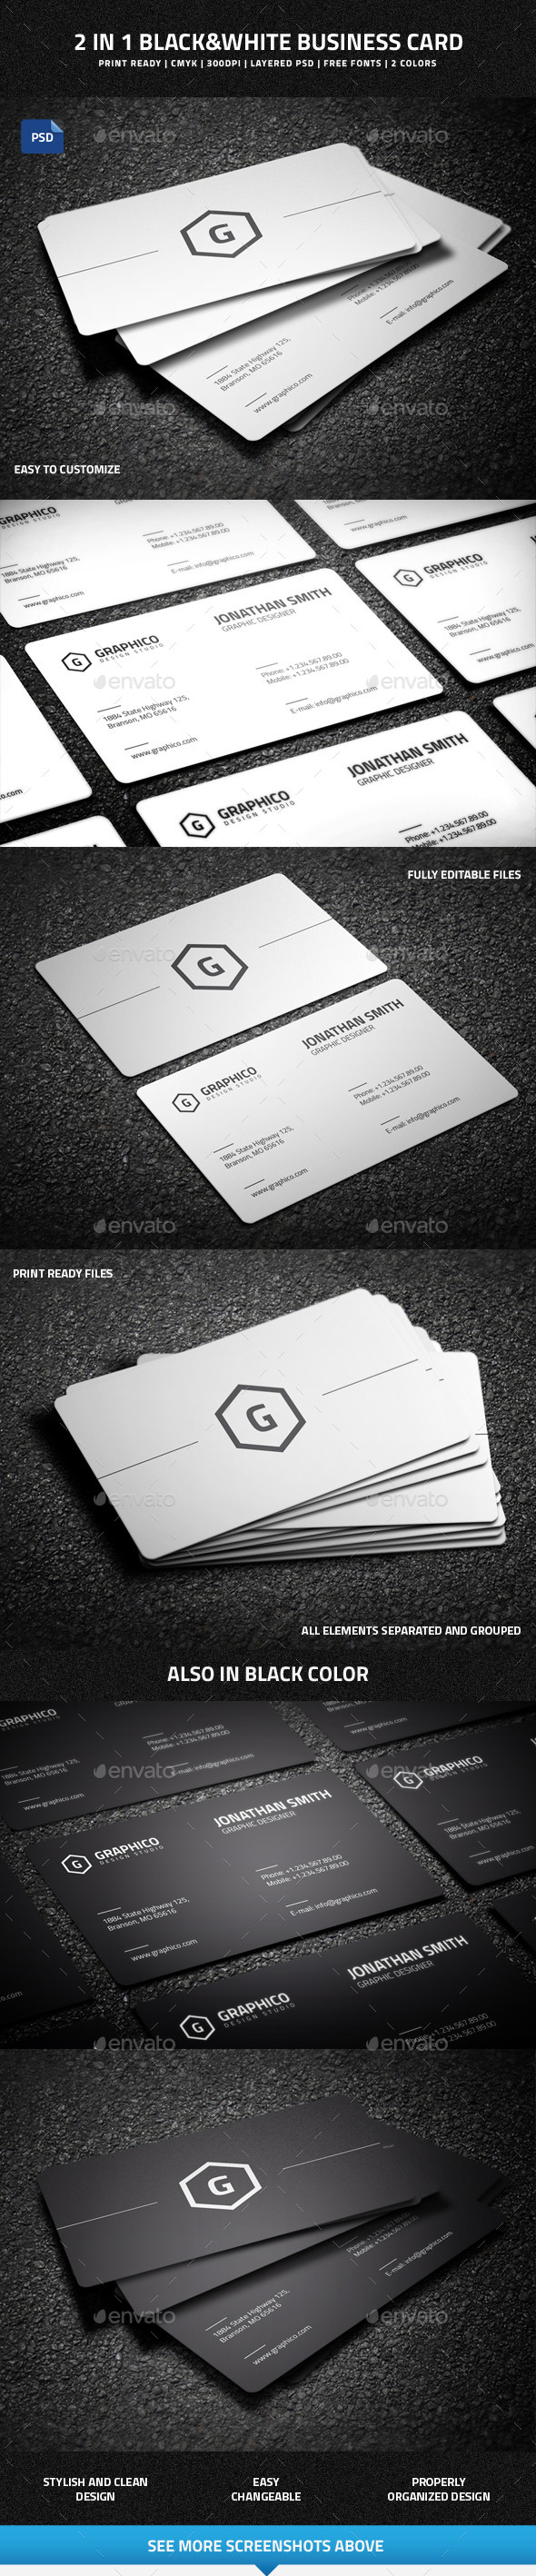 GraphicRiver 2 in 1 Black & White Business Card 9711052